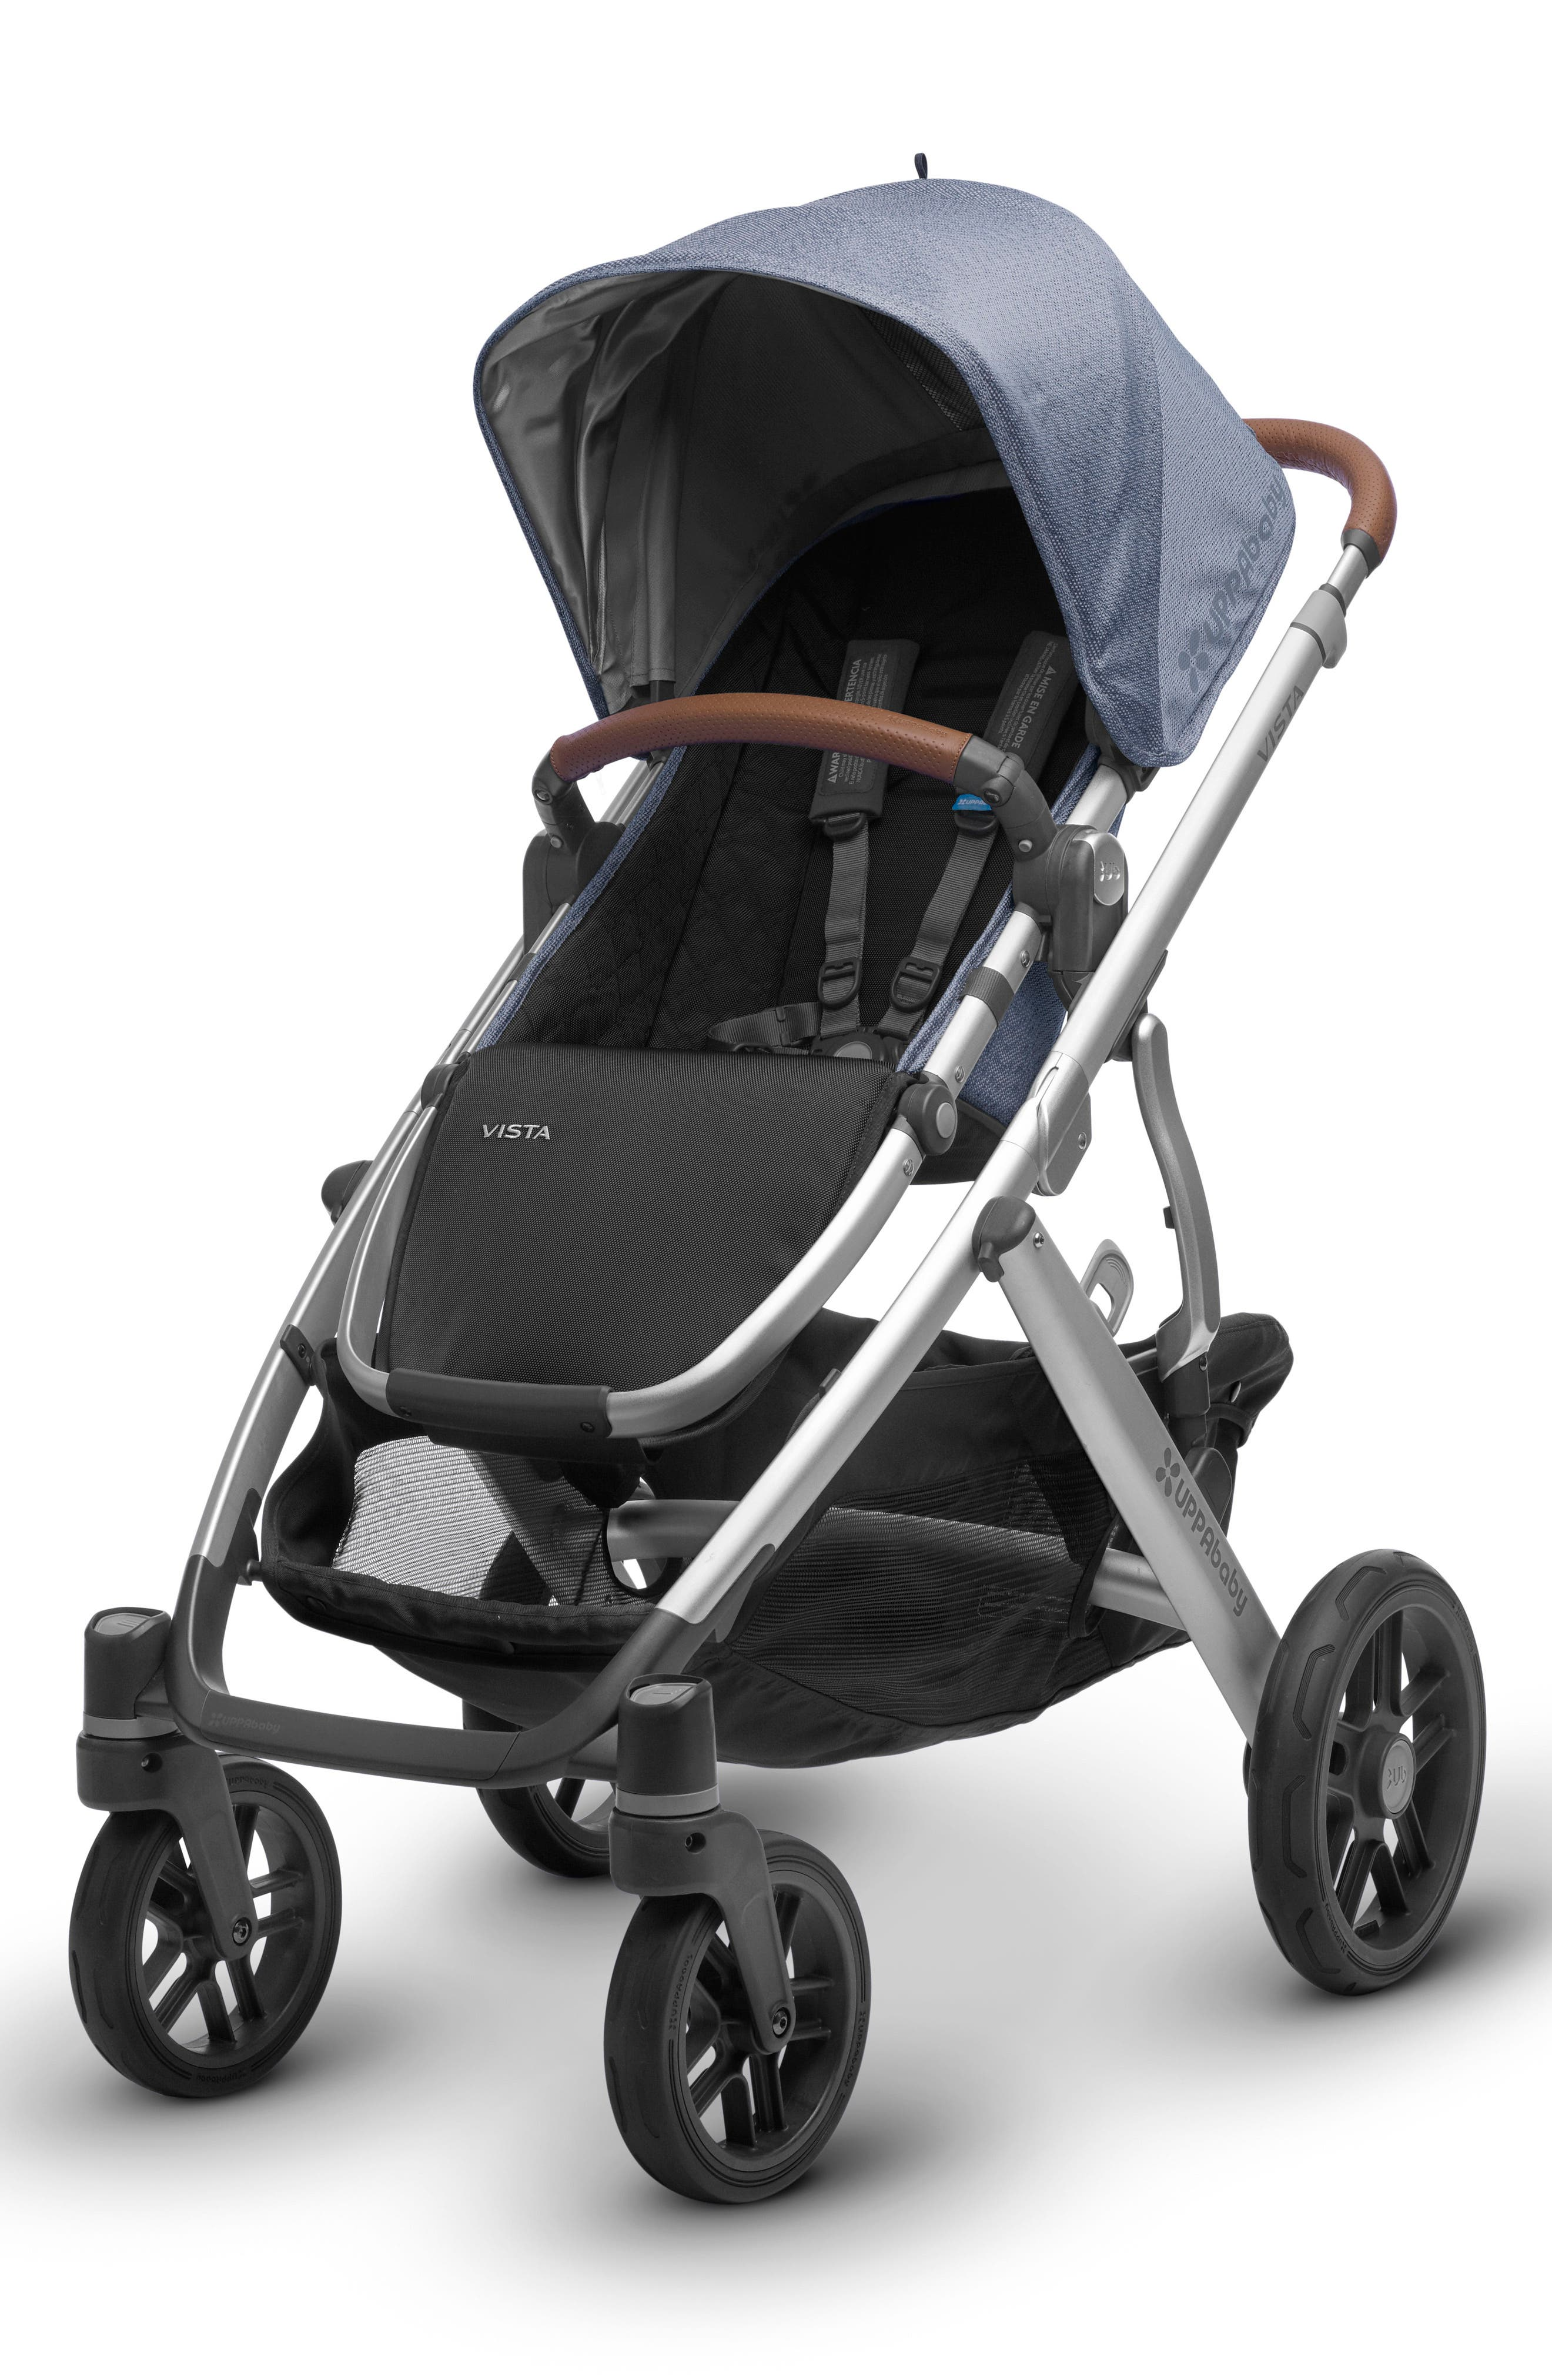 2018 VISTA Aluminum Frame Convertible Complete Stroller with Leather Trim,                         Main,                         color, Henry Blue Marl/ Silver